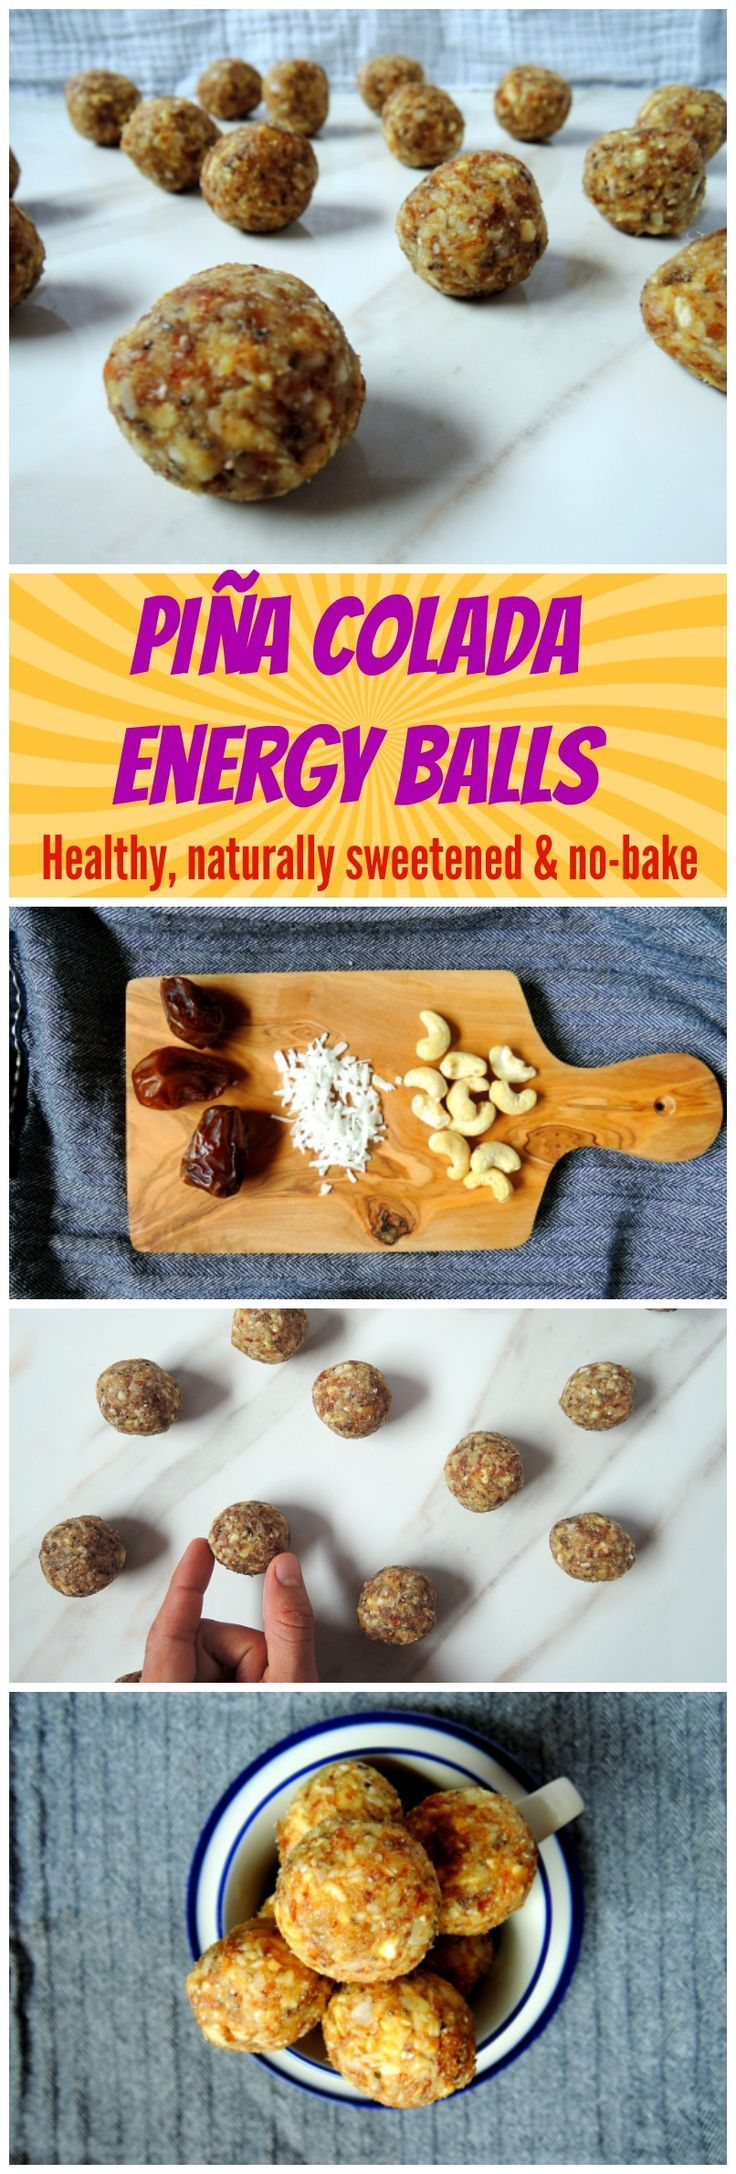 Healthy naturally sweetened tropical snack. SO DELICIOUS!